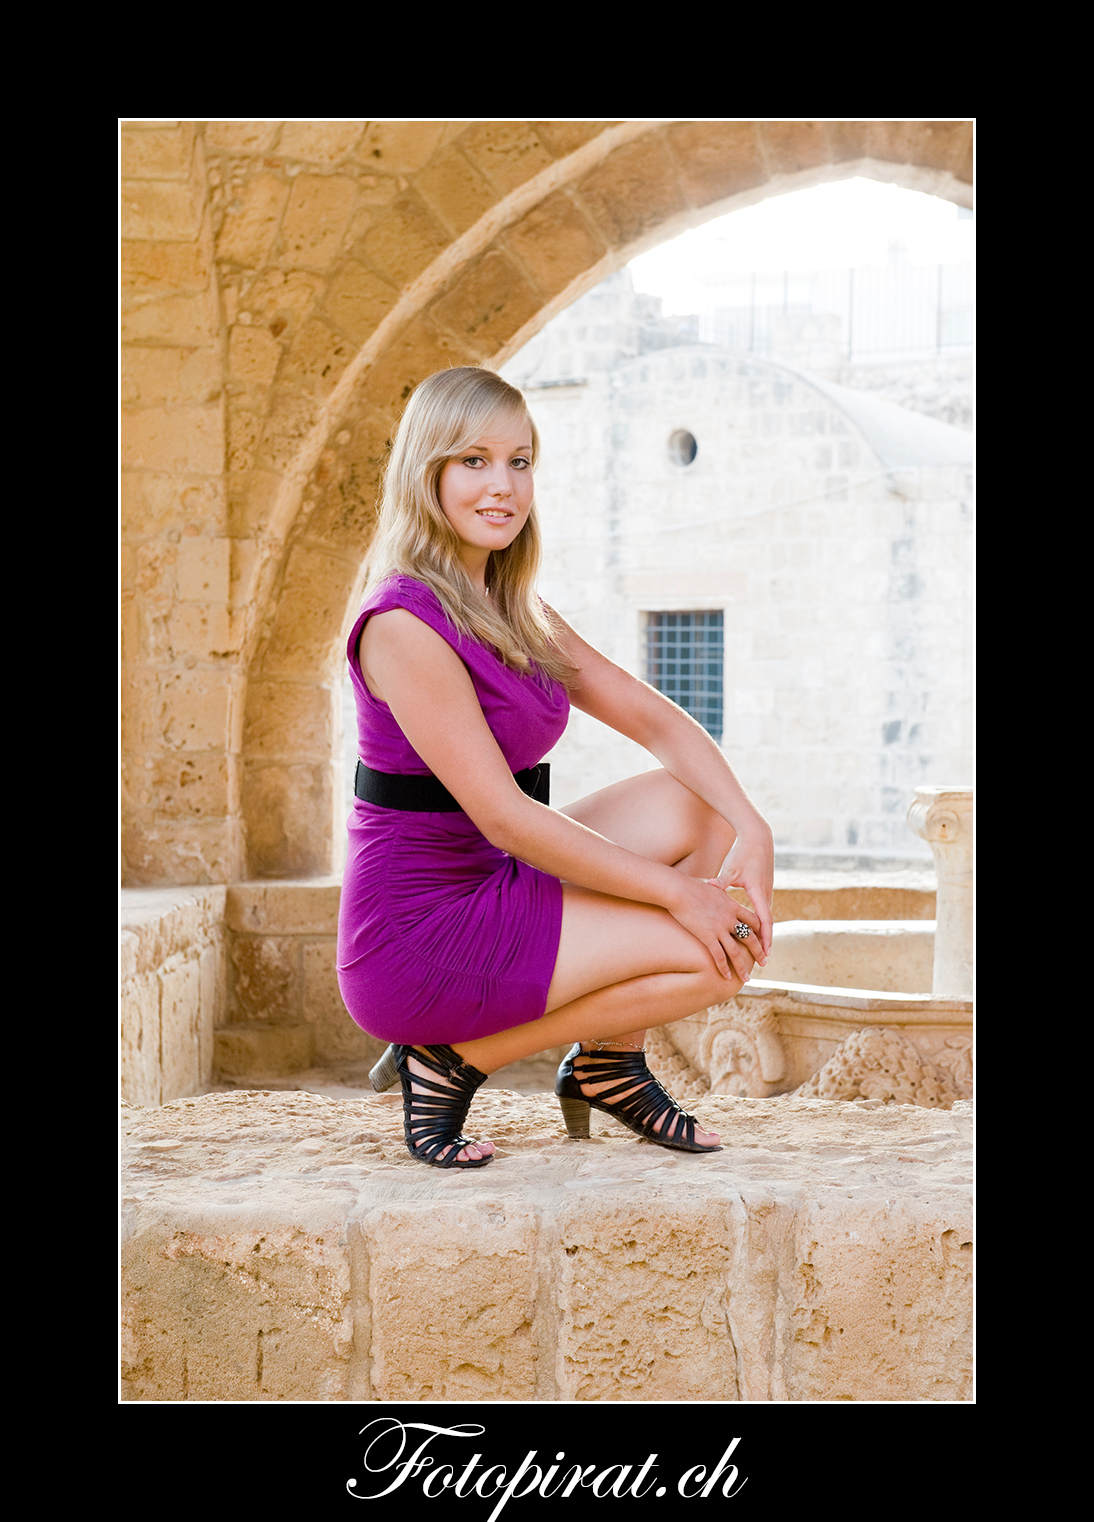 Fotoshooting, On Location, blondes Fotomodel, Modelagentur, Sportmodel, Kloster Ayia Napa, Fotomodel